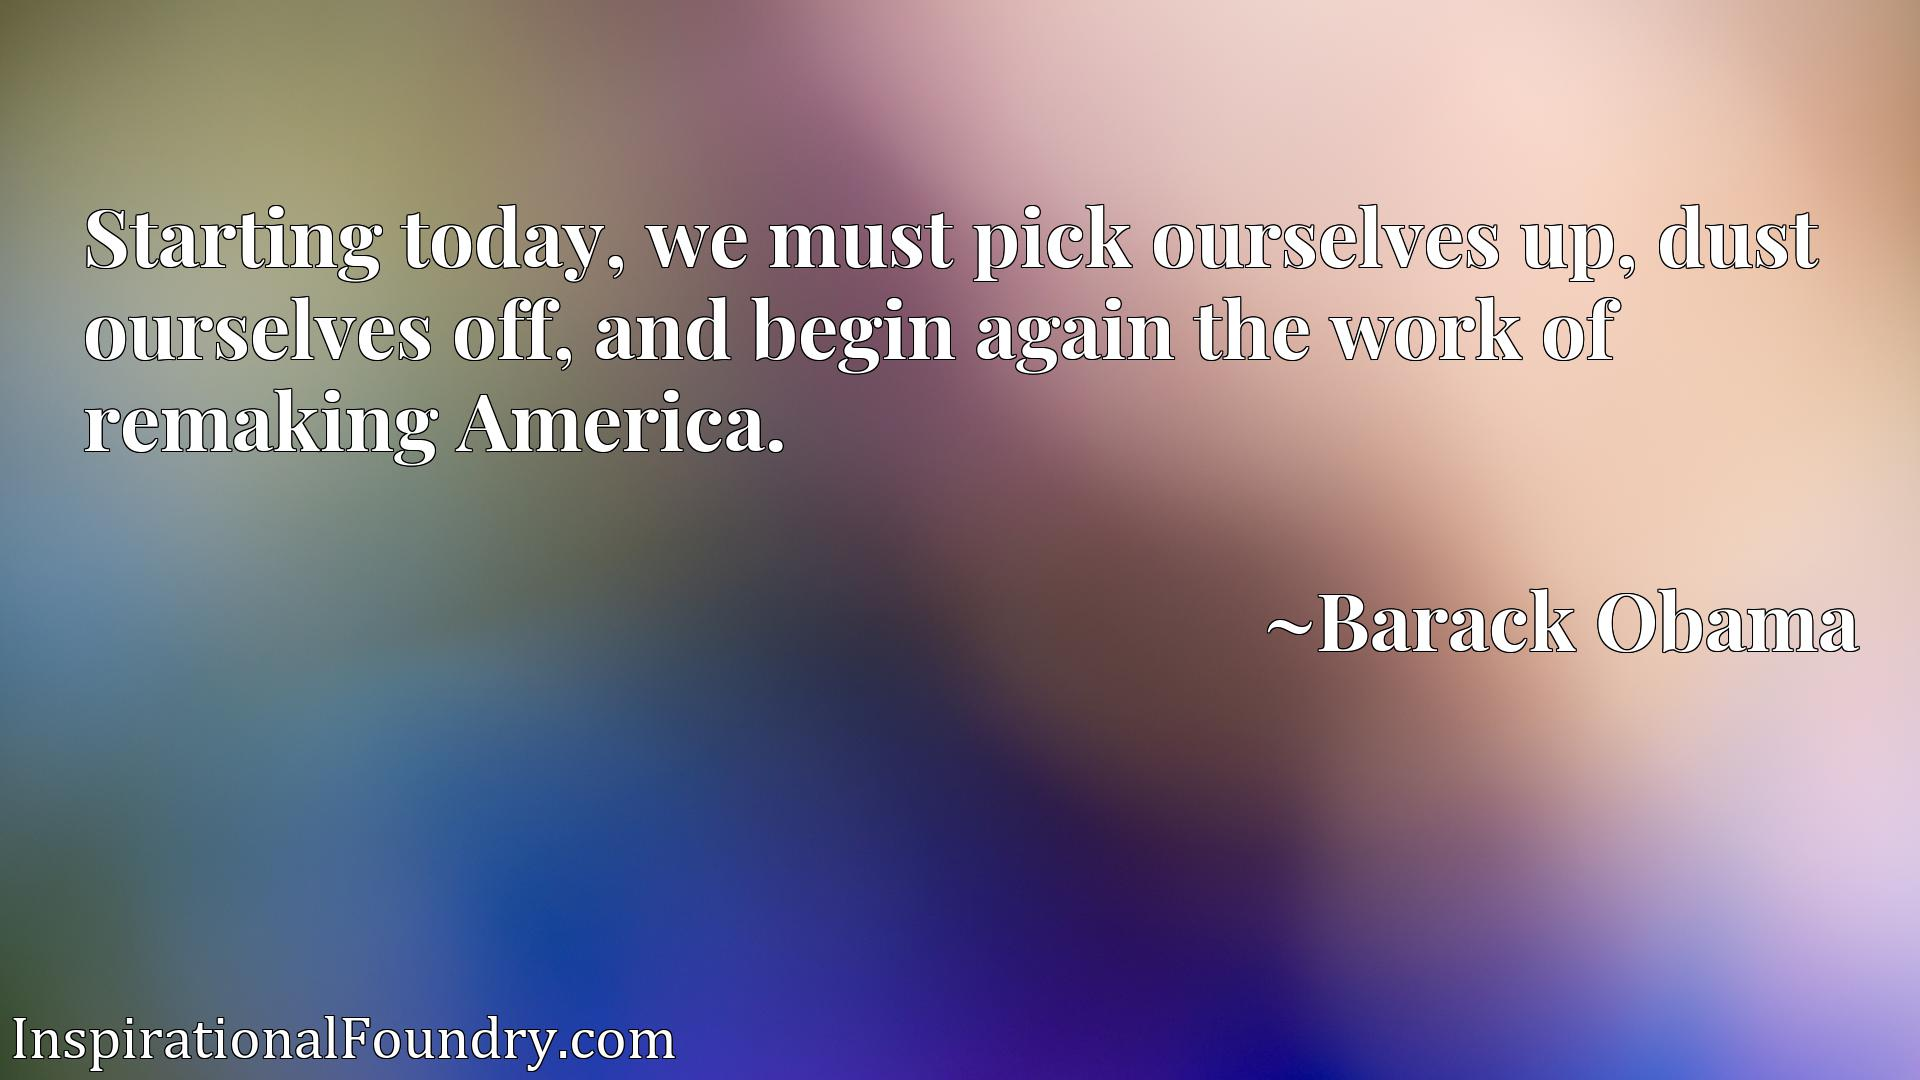 Starting today, we must pick ourselves up, dust ourselves off, and begin again the work of remaking America.